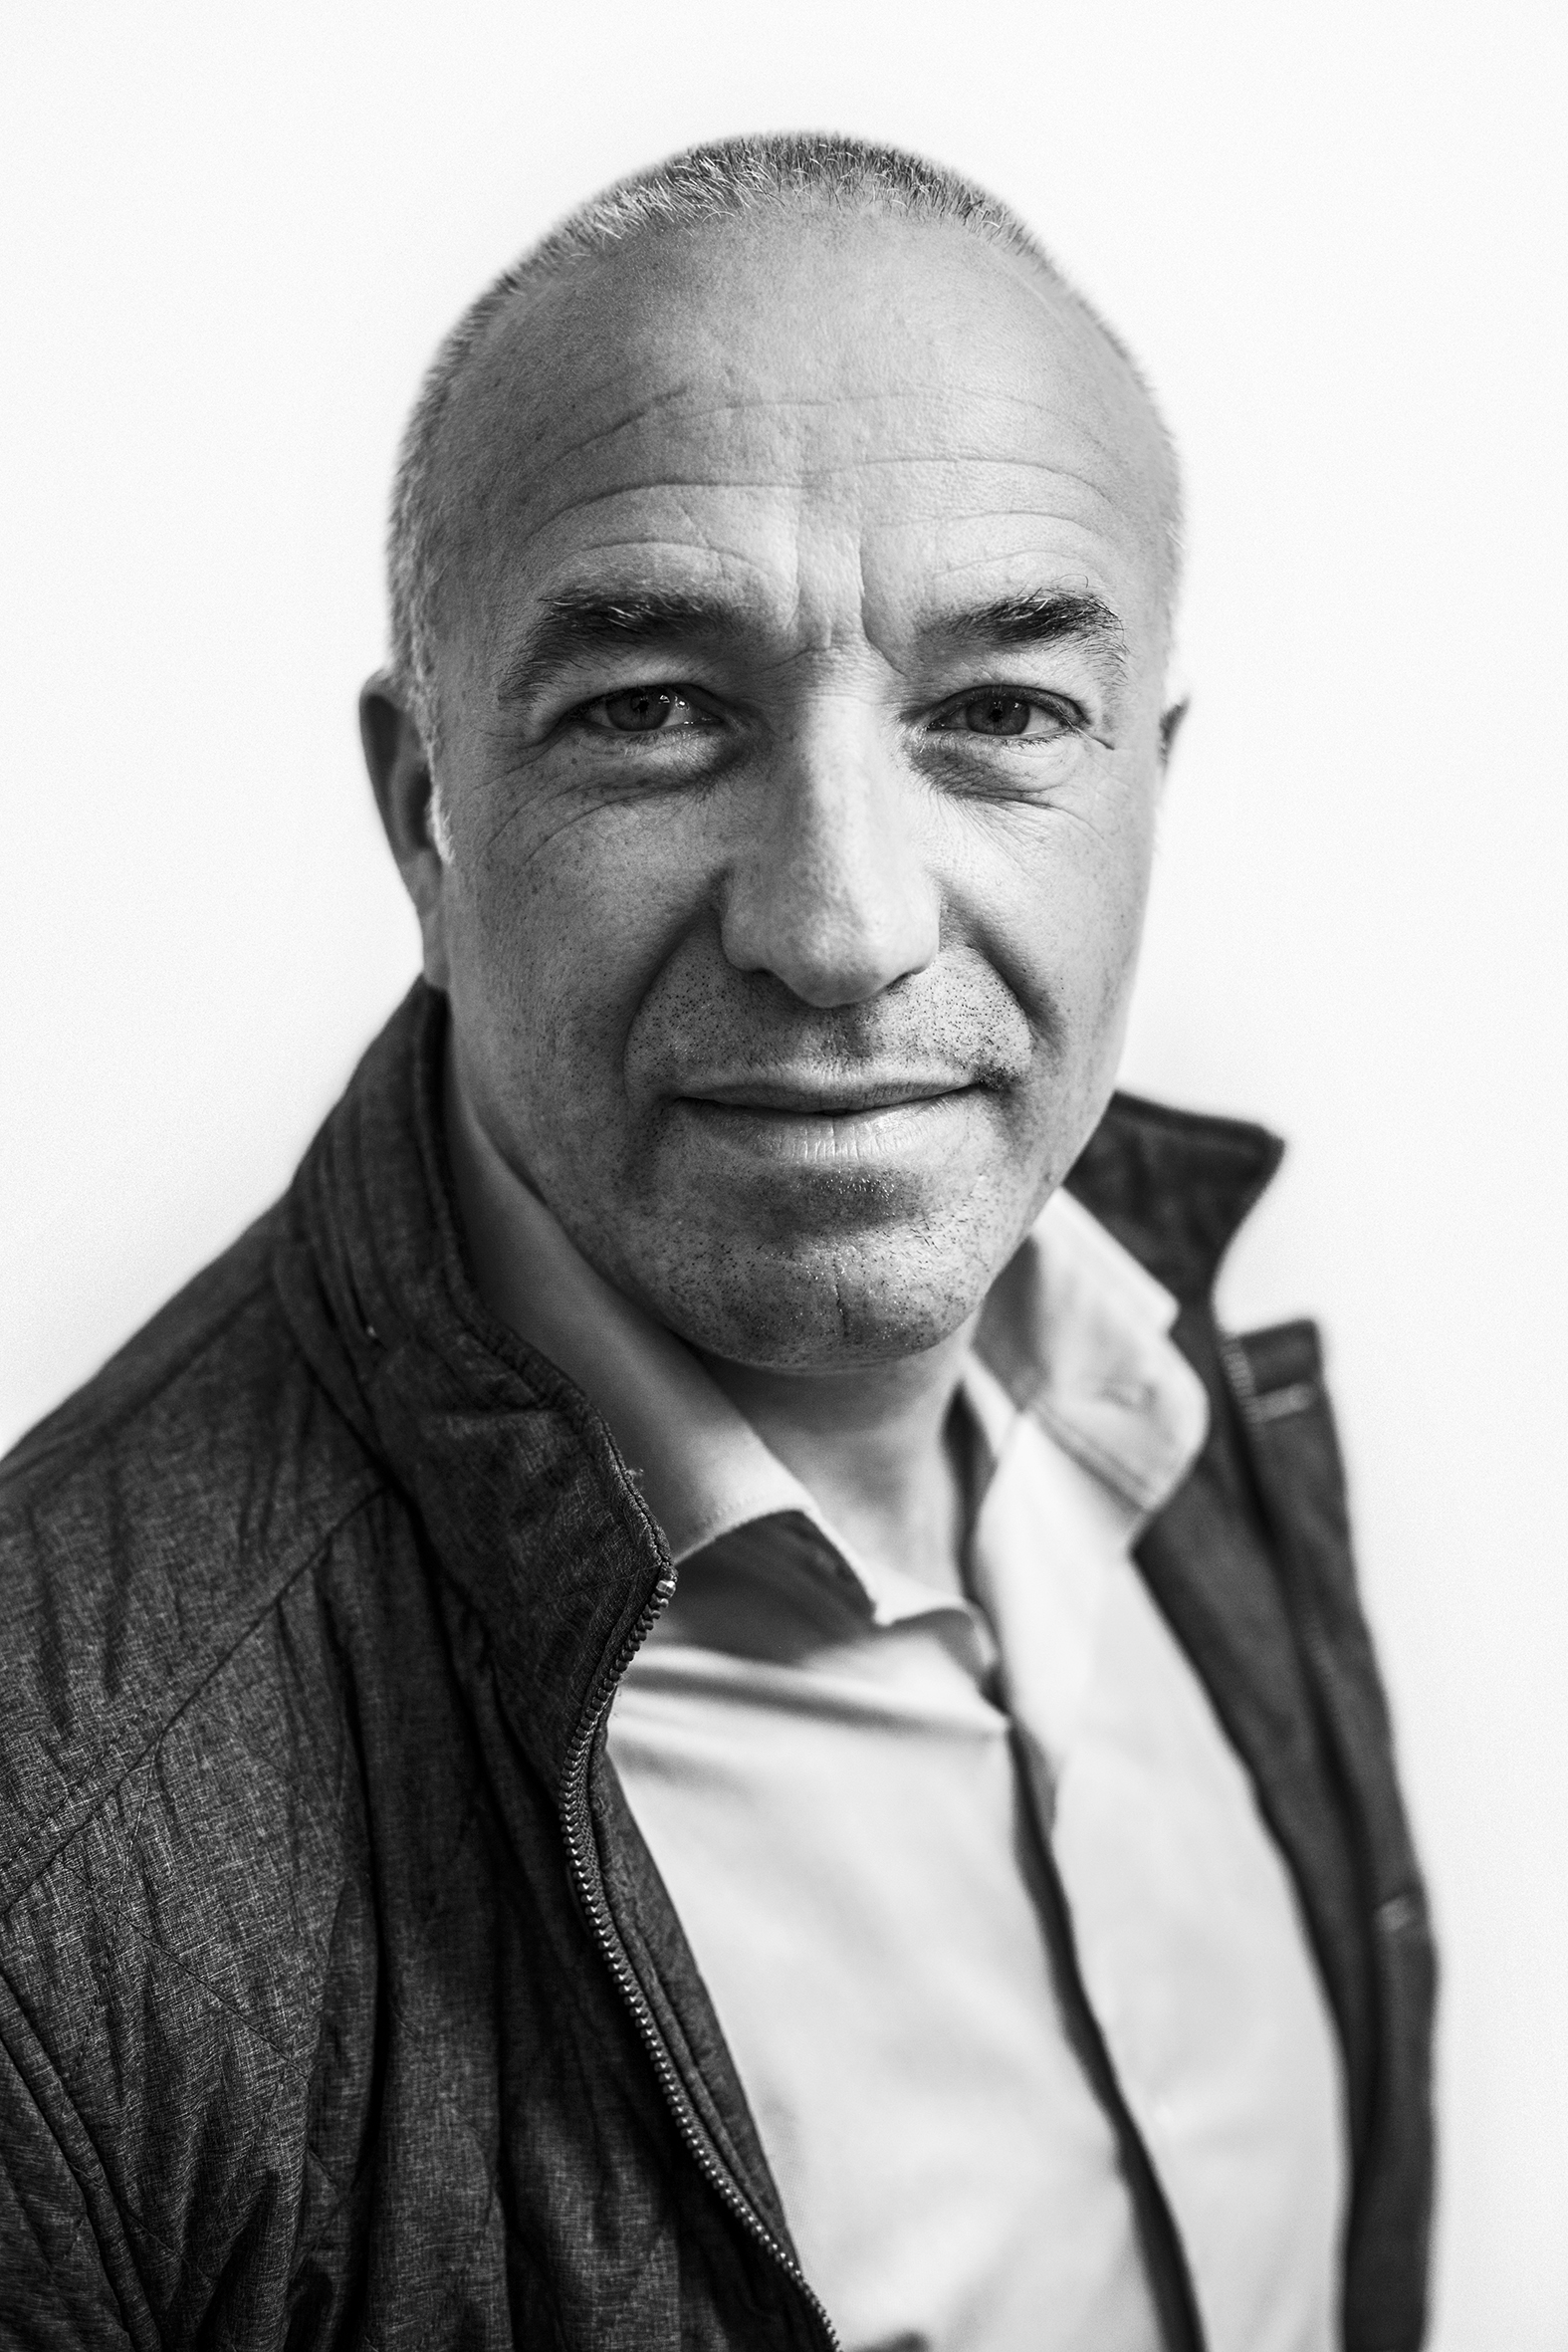 Peak Value: Ondernemen is Topsport, Tom Coronel - Autocoureur, Speaker.